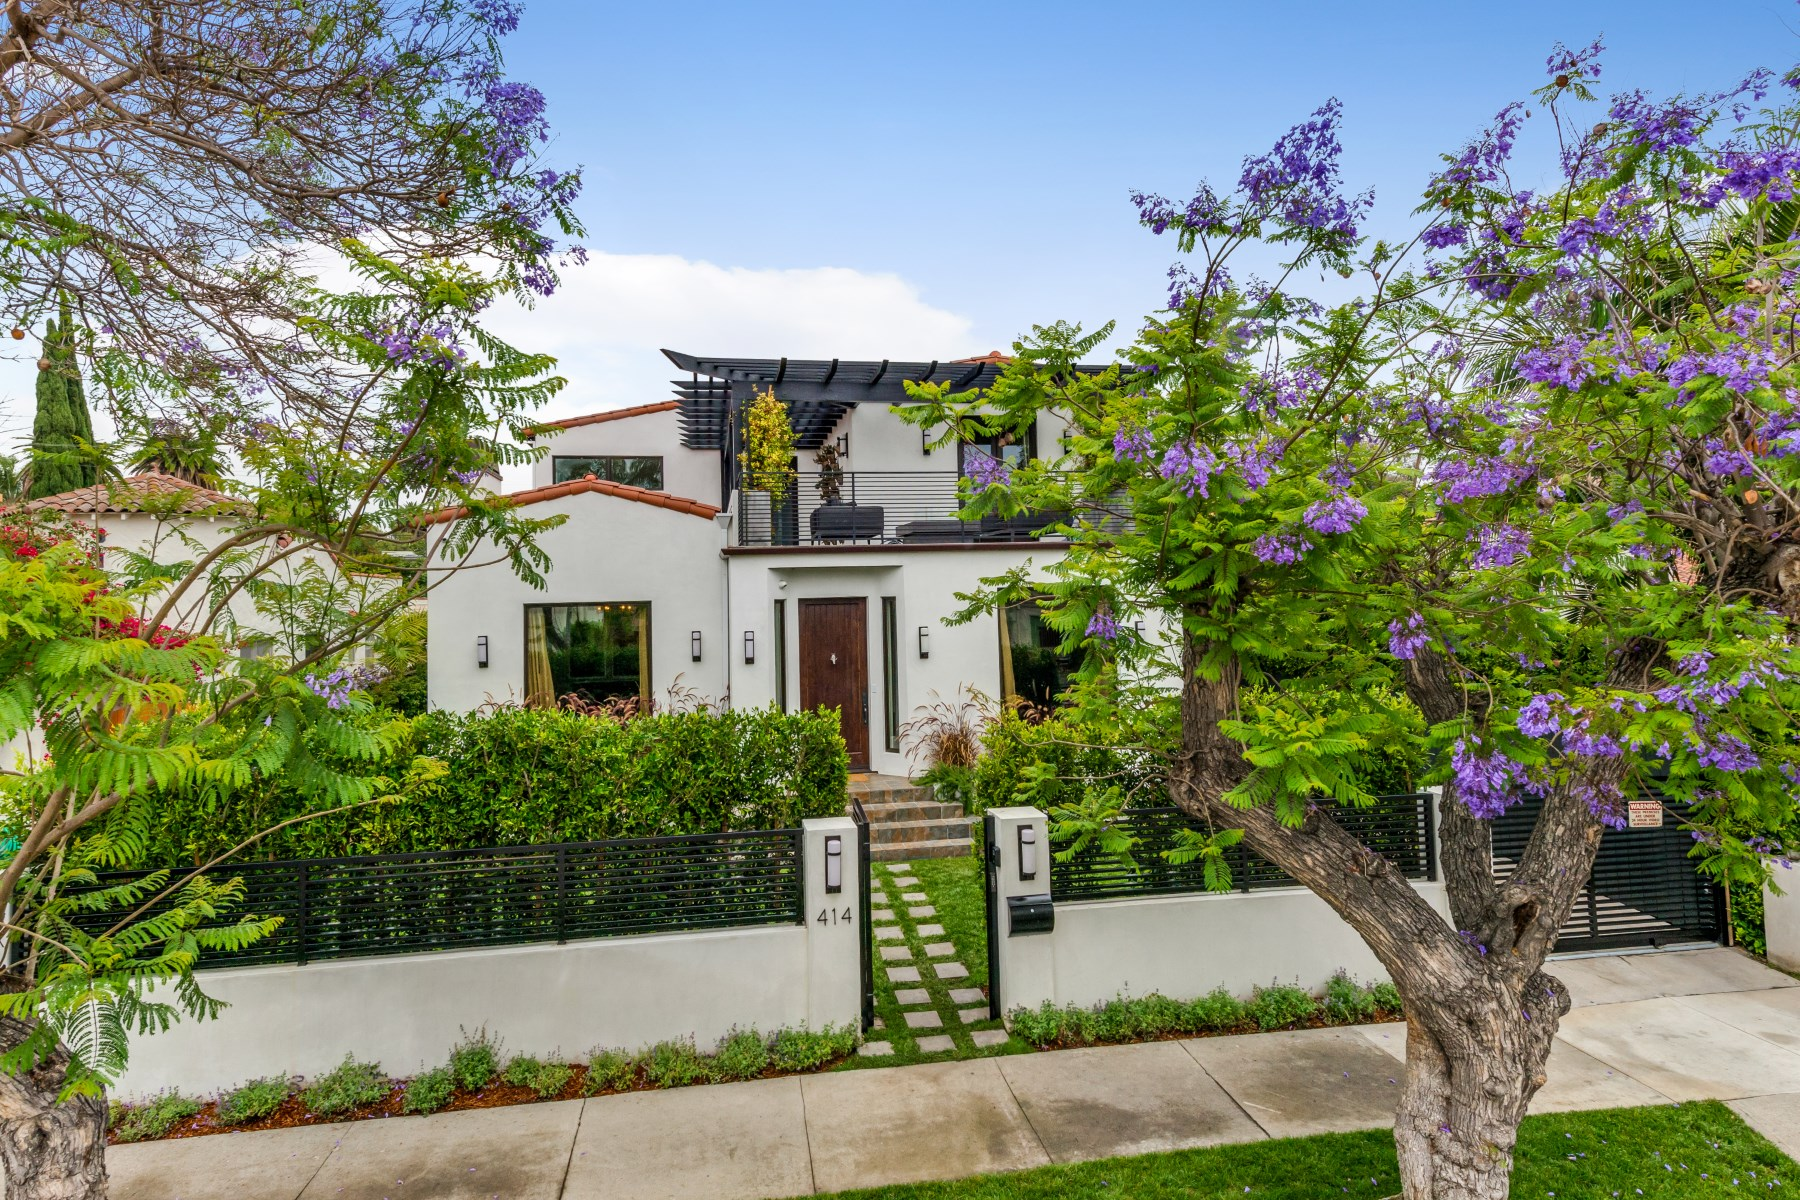 Single Family Home for Sale at Light and Bright Spanish Style 414 North La Jolla Avenue Beverly Center, Los Angeles, California 90048 United States